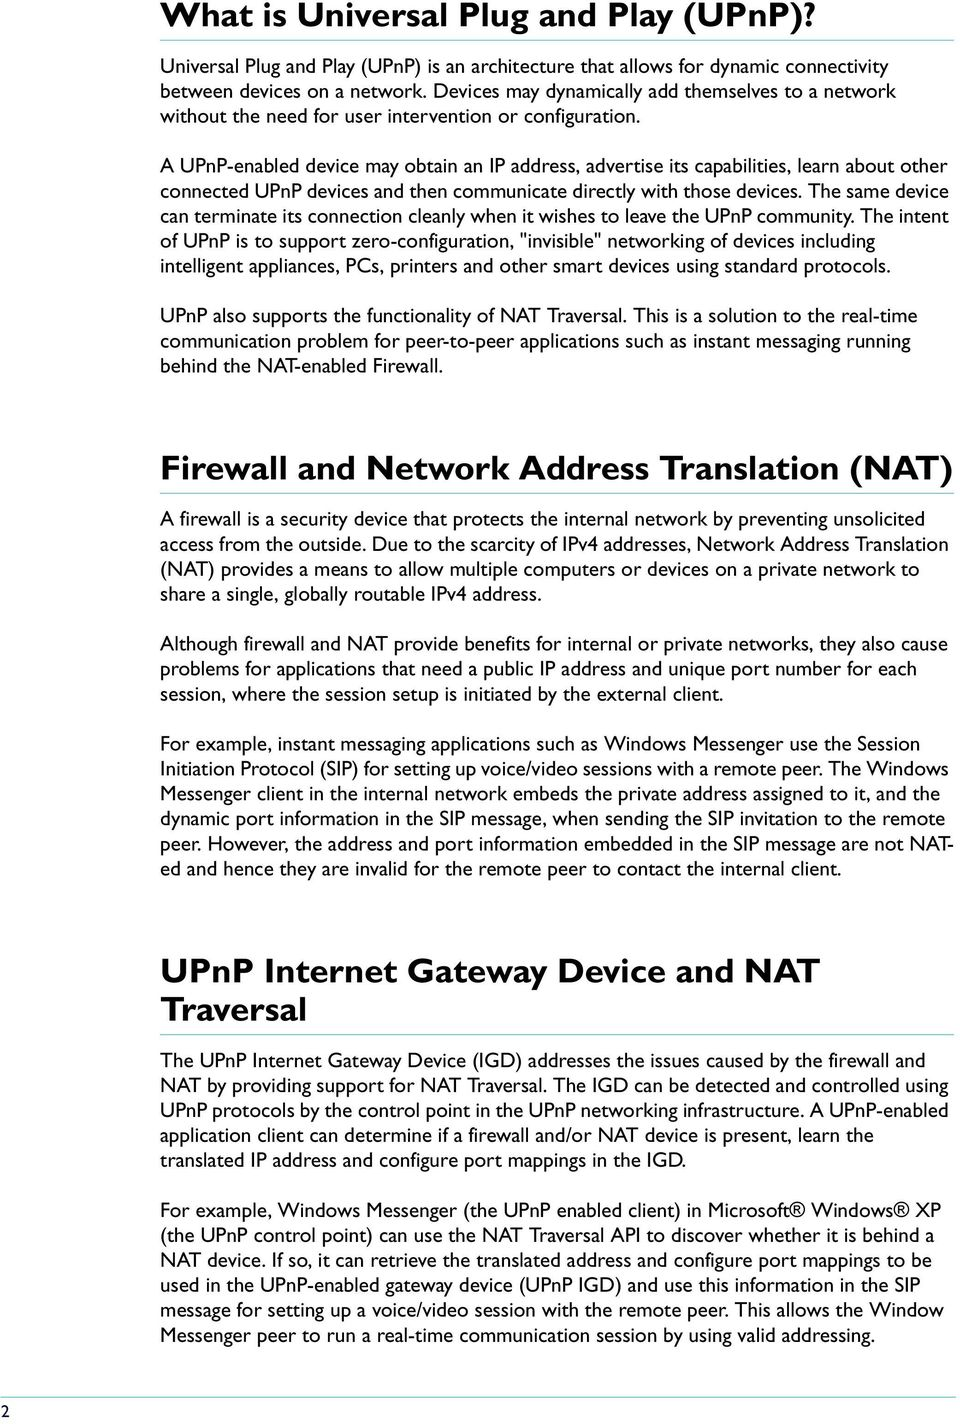 A UPnP-enabled device may obtain an IP address, advertise its capabilities, learn about other connected UPnP devices and then communicate directly with those devices.